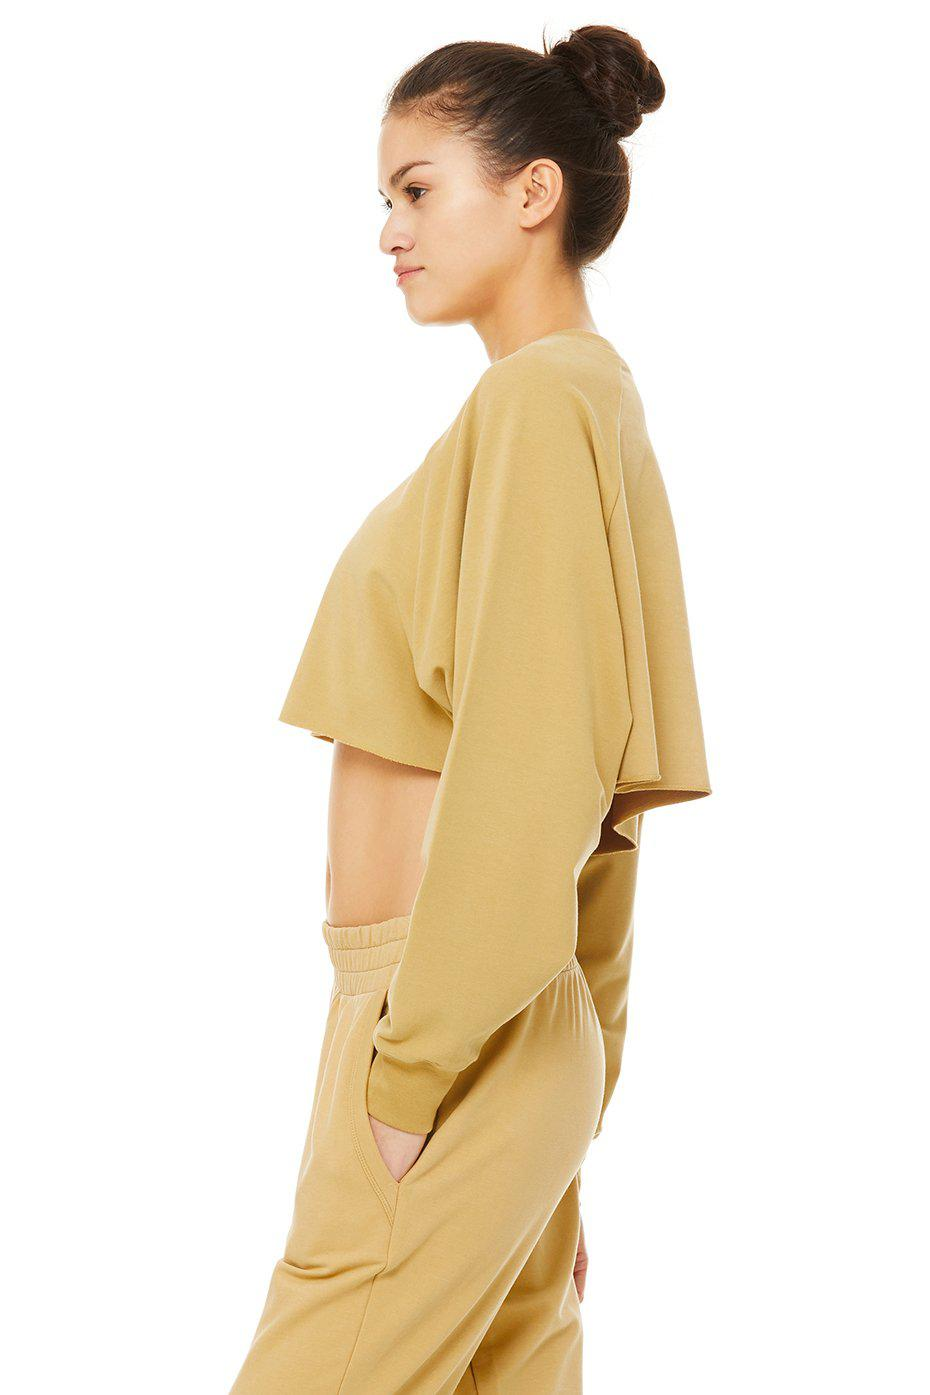 Double Take Pullover - Honey 1